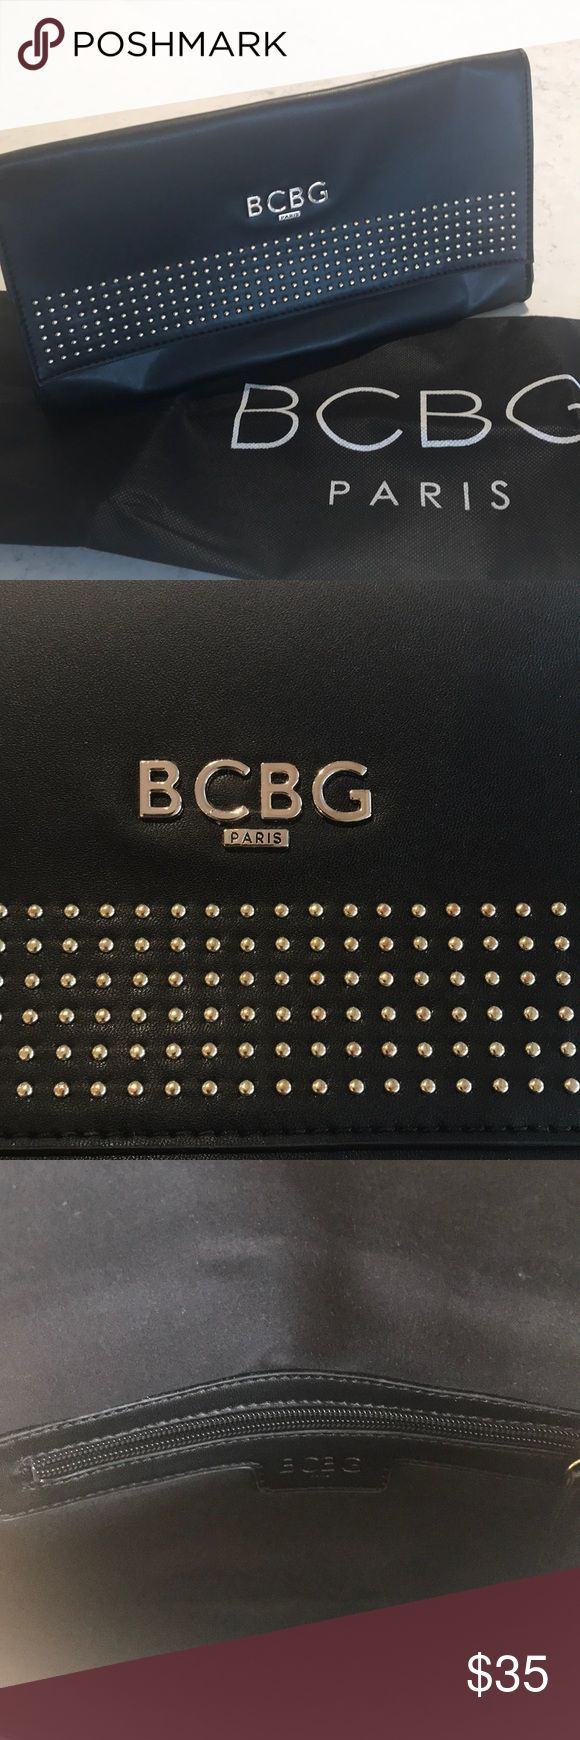 BCBG black studded clutch purse Black leather clutch with gold studs. Great condition. Used only once!!! BCBG Bags Clutches & Wristlets